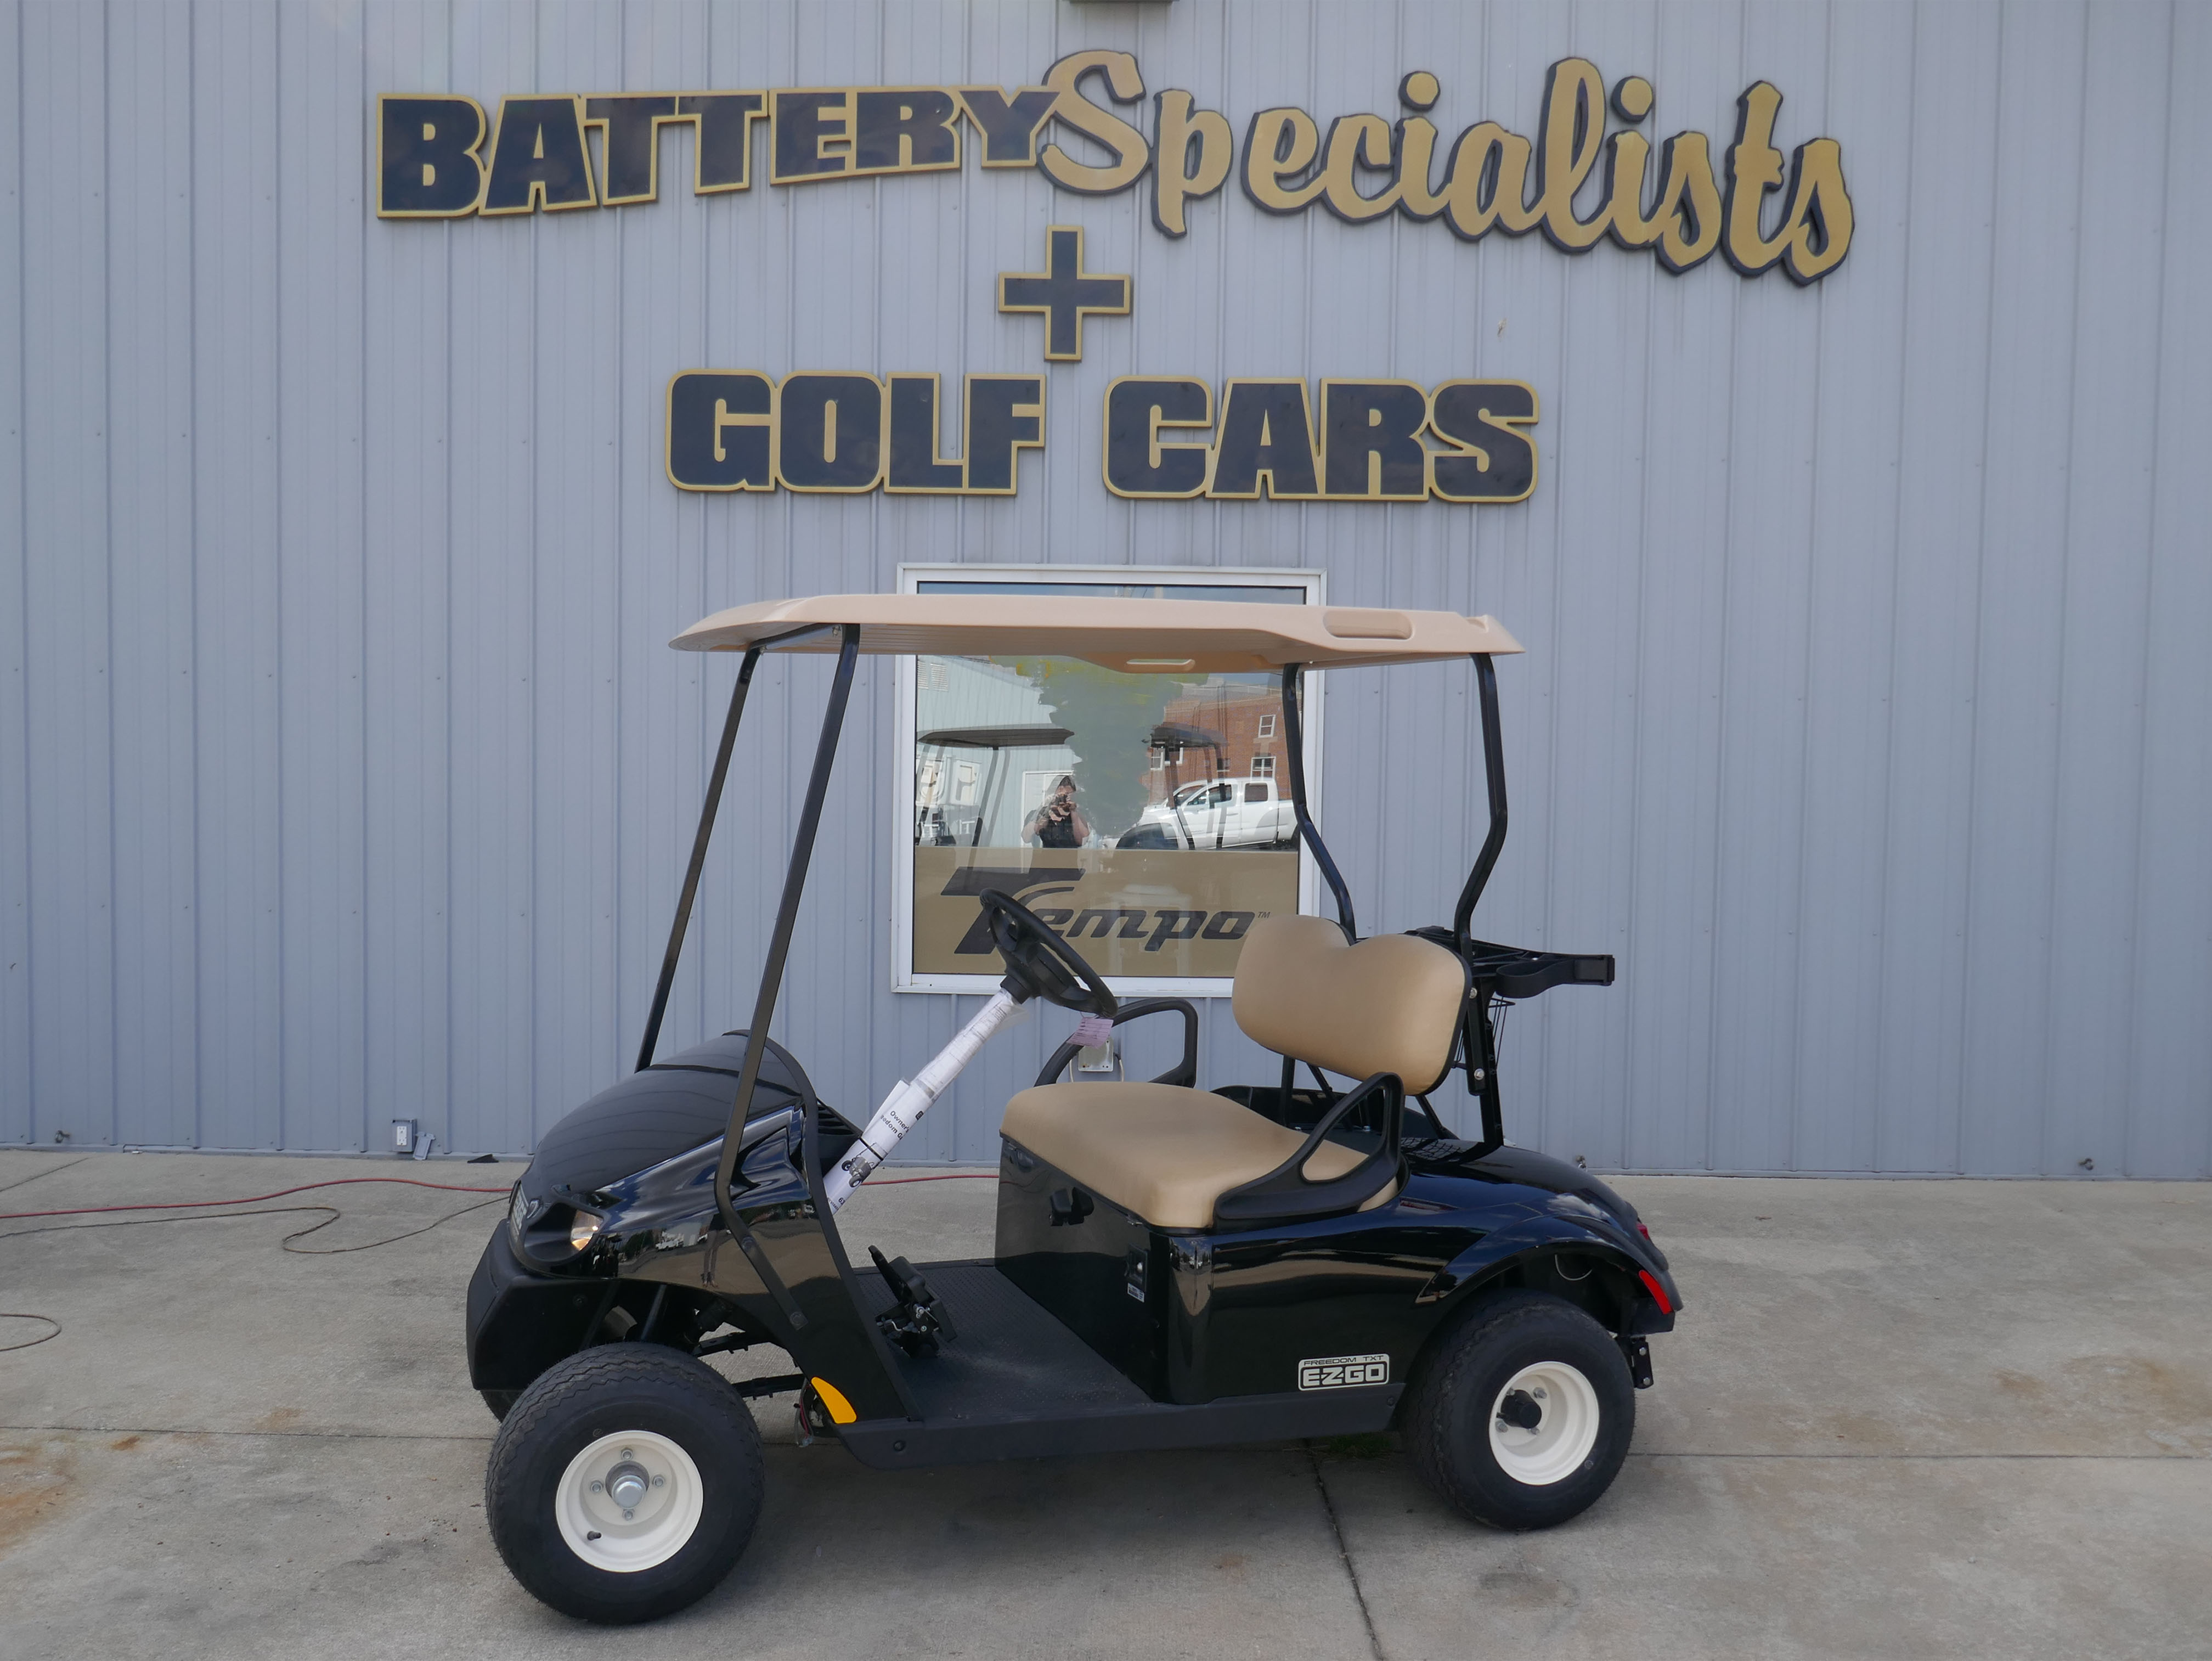 2018 PLATINUM EZGO Electric Golf Cart $7695